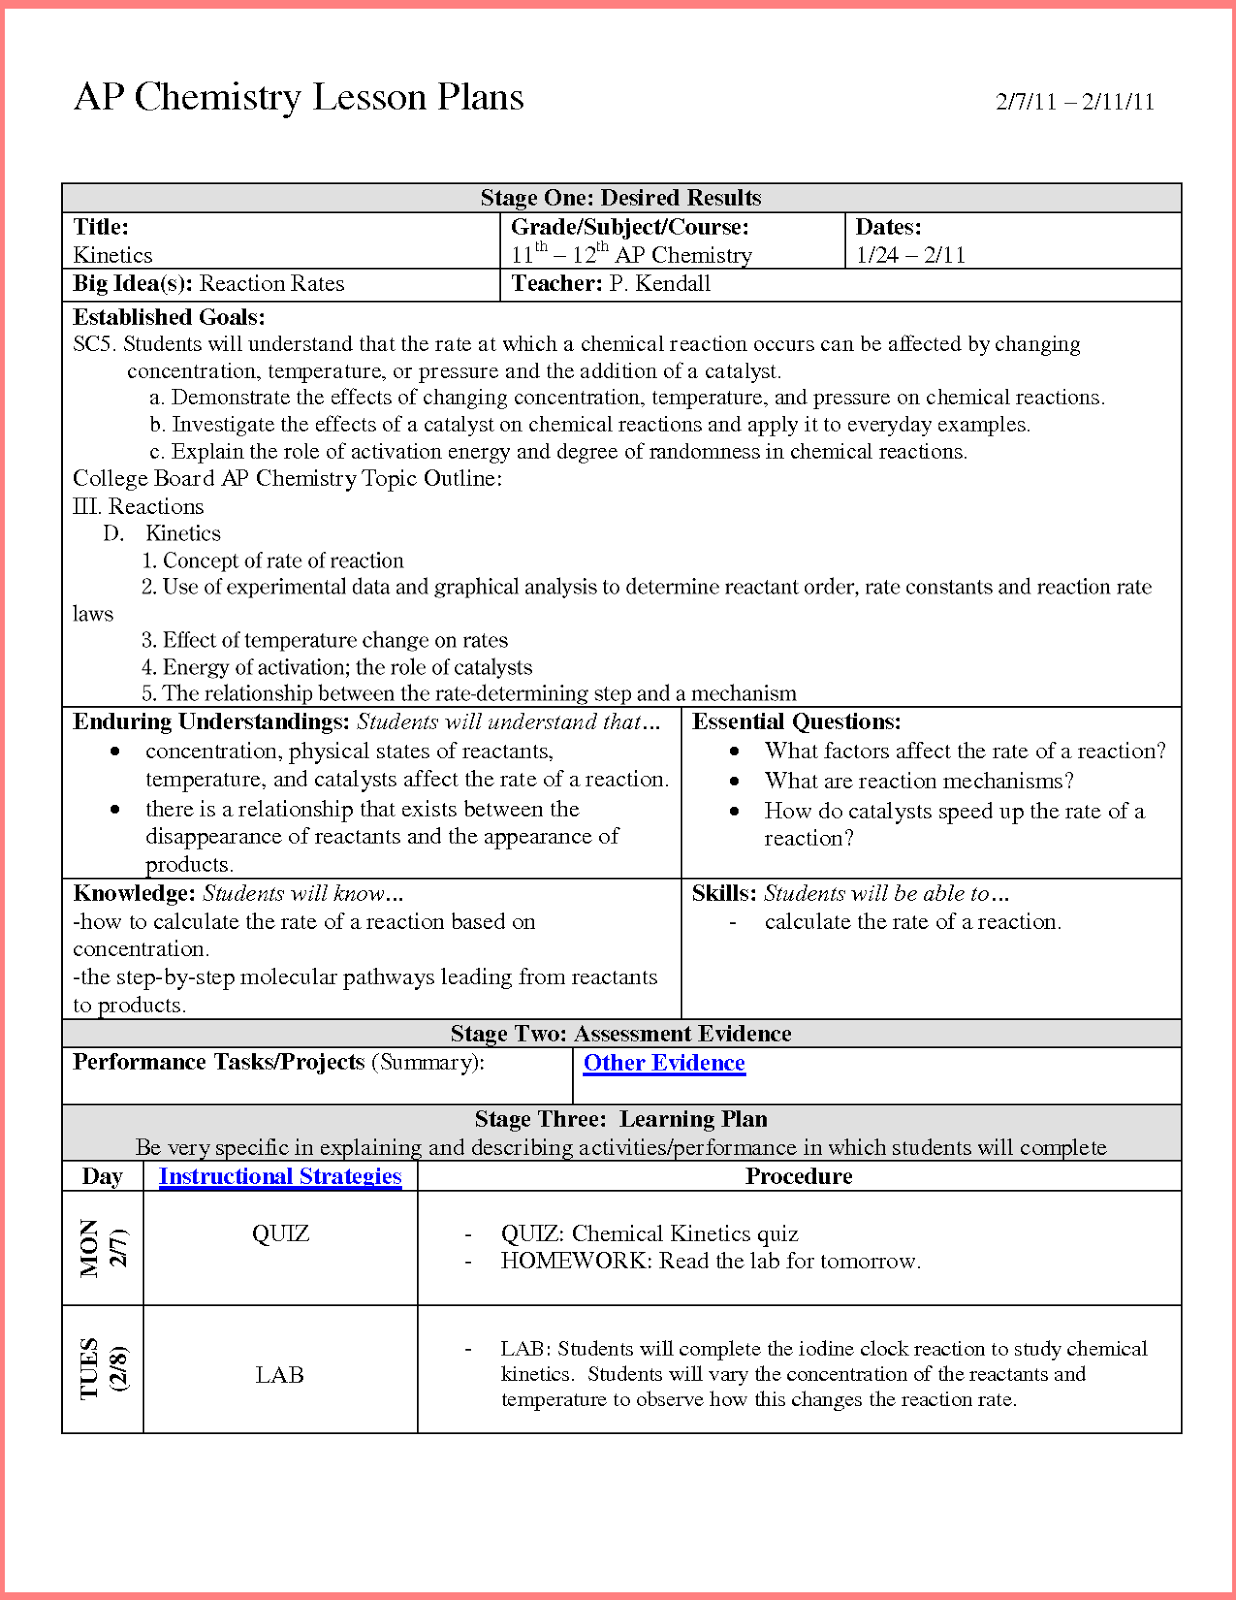 Backward Design Lesson Plan Template 2 Resume Business